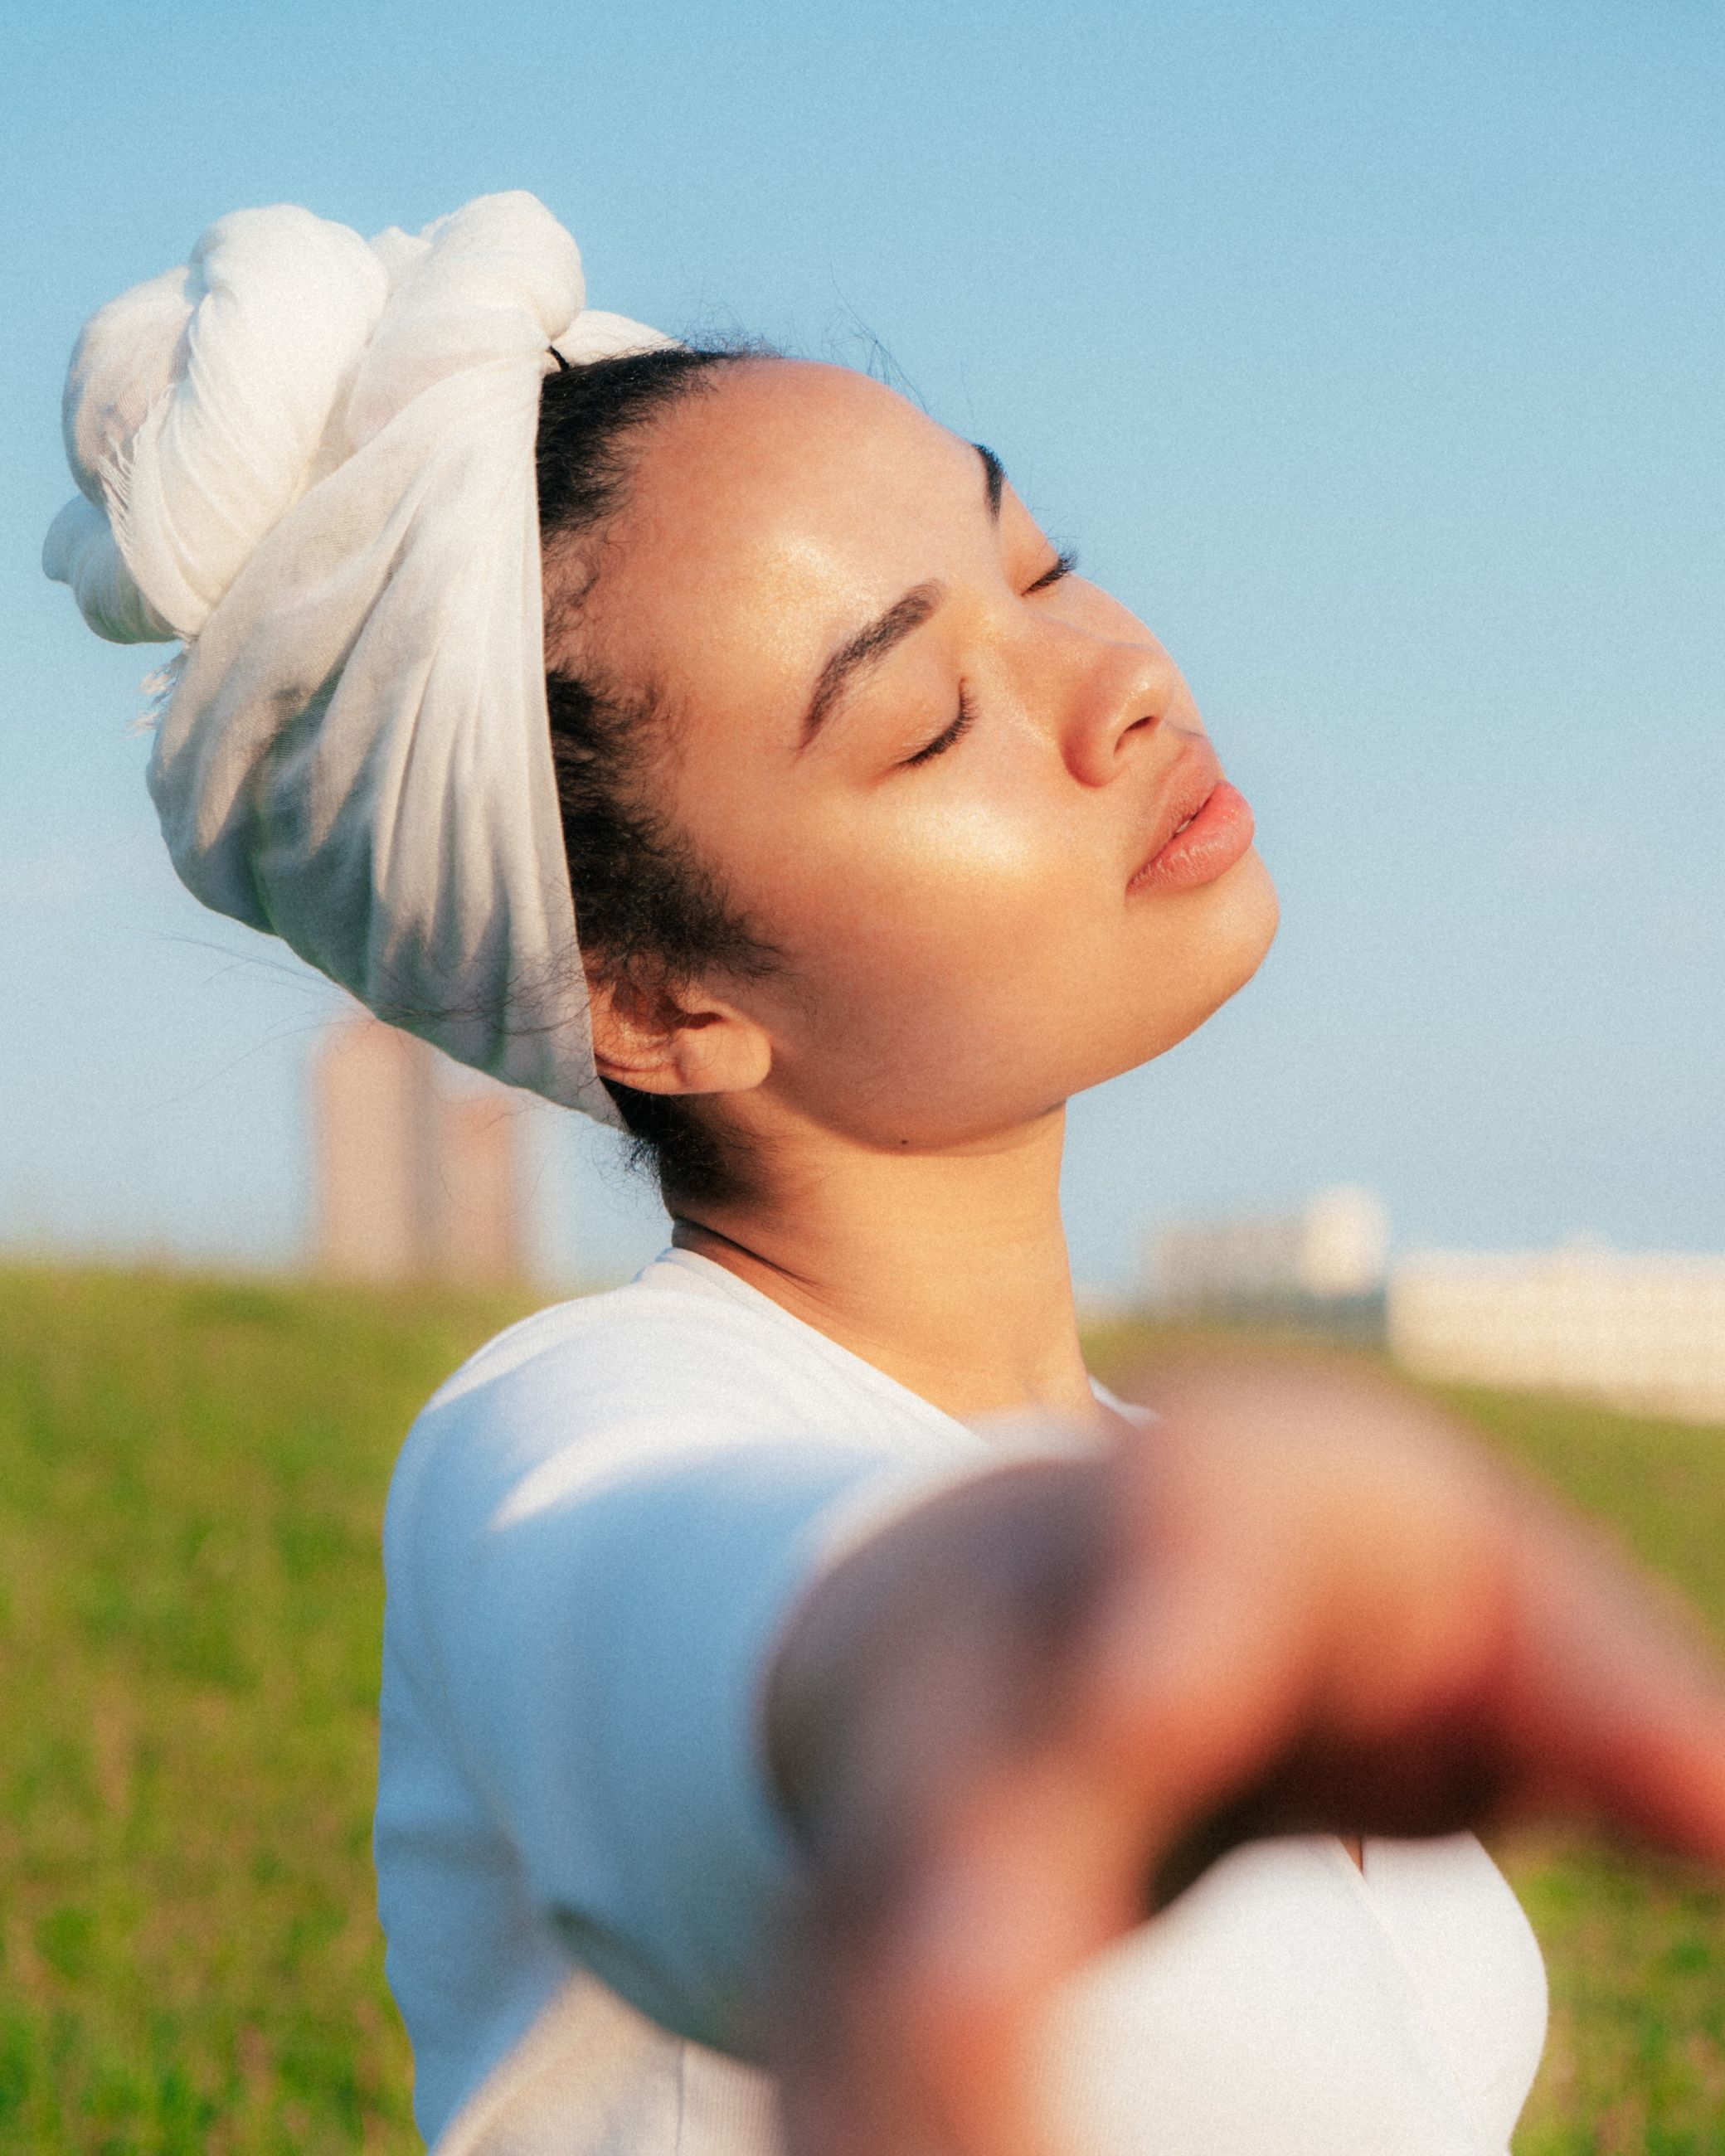 real people, leisure activity, one person, lifestyles, nature, eyes closed, sky, land, day, headshot, field, young women, grass, sunlight, young adult, women, focus on foreground, clear sky, hairstyle, outdoors, beautiful woman